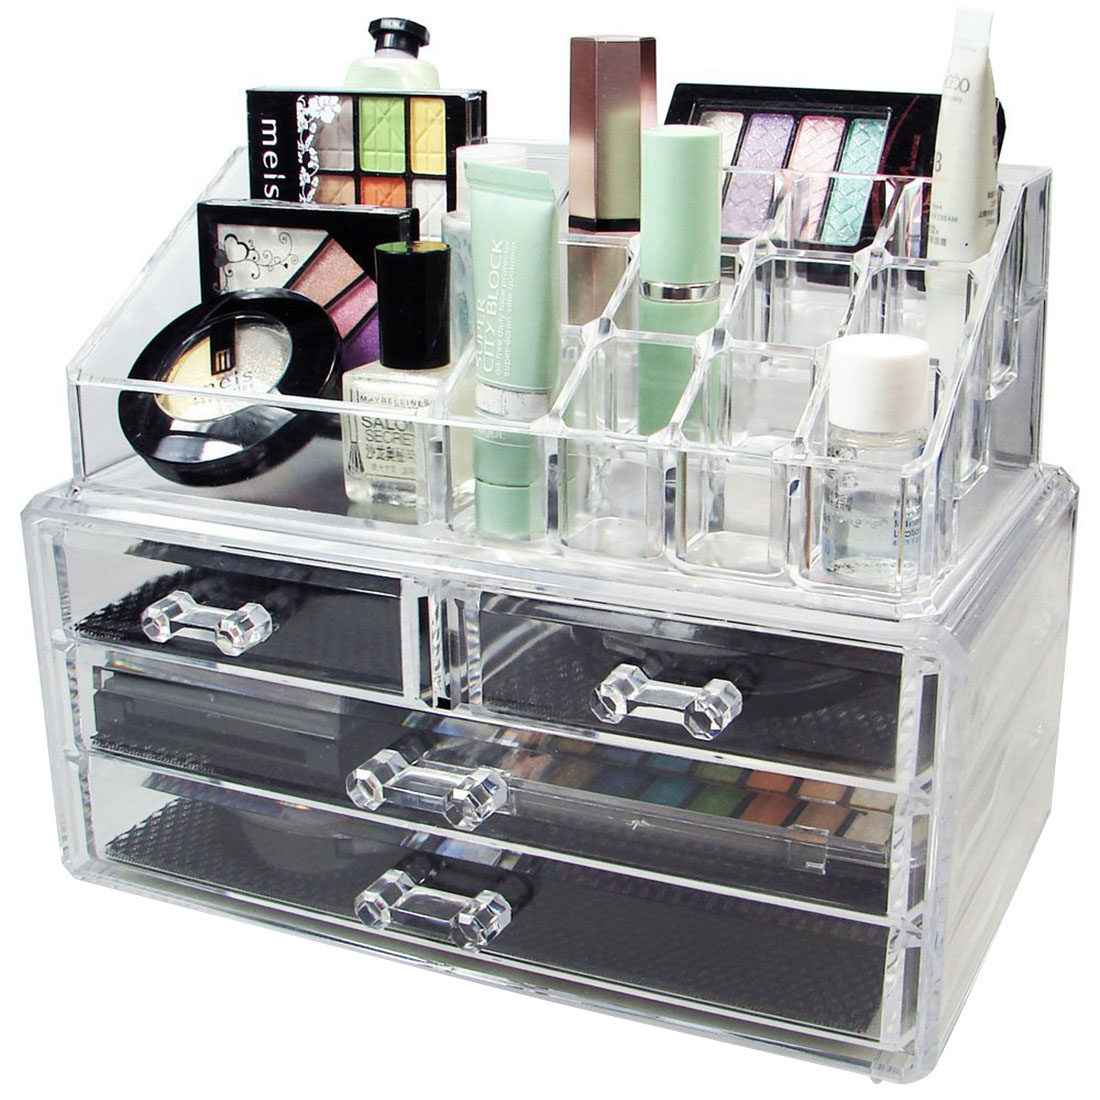 Popular 4 drawer storage buy cheap 4 drawer storage lots - Boite de rangement pour maquillage ...